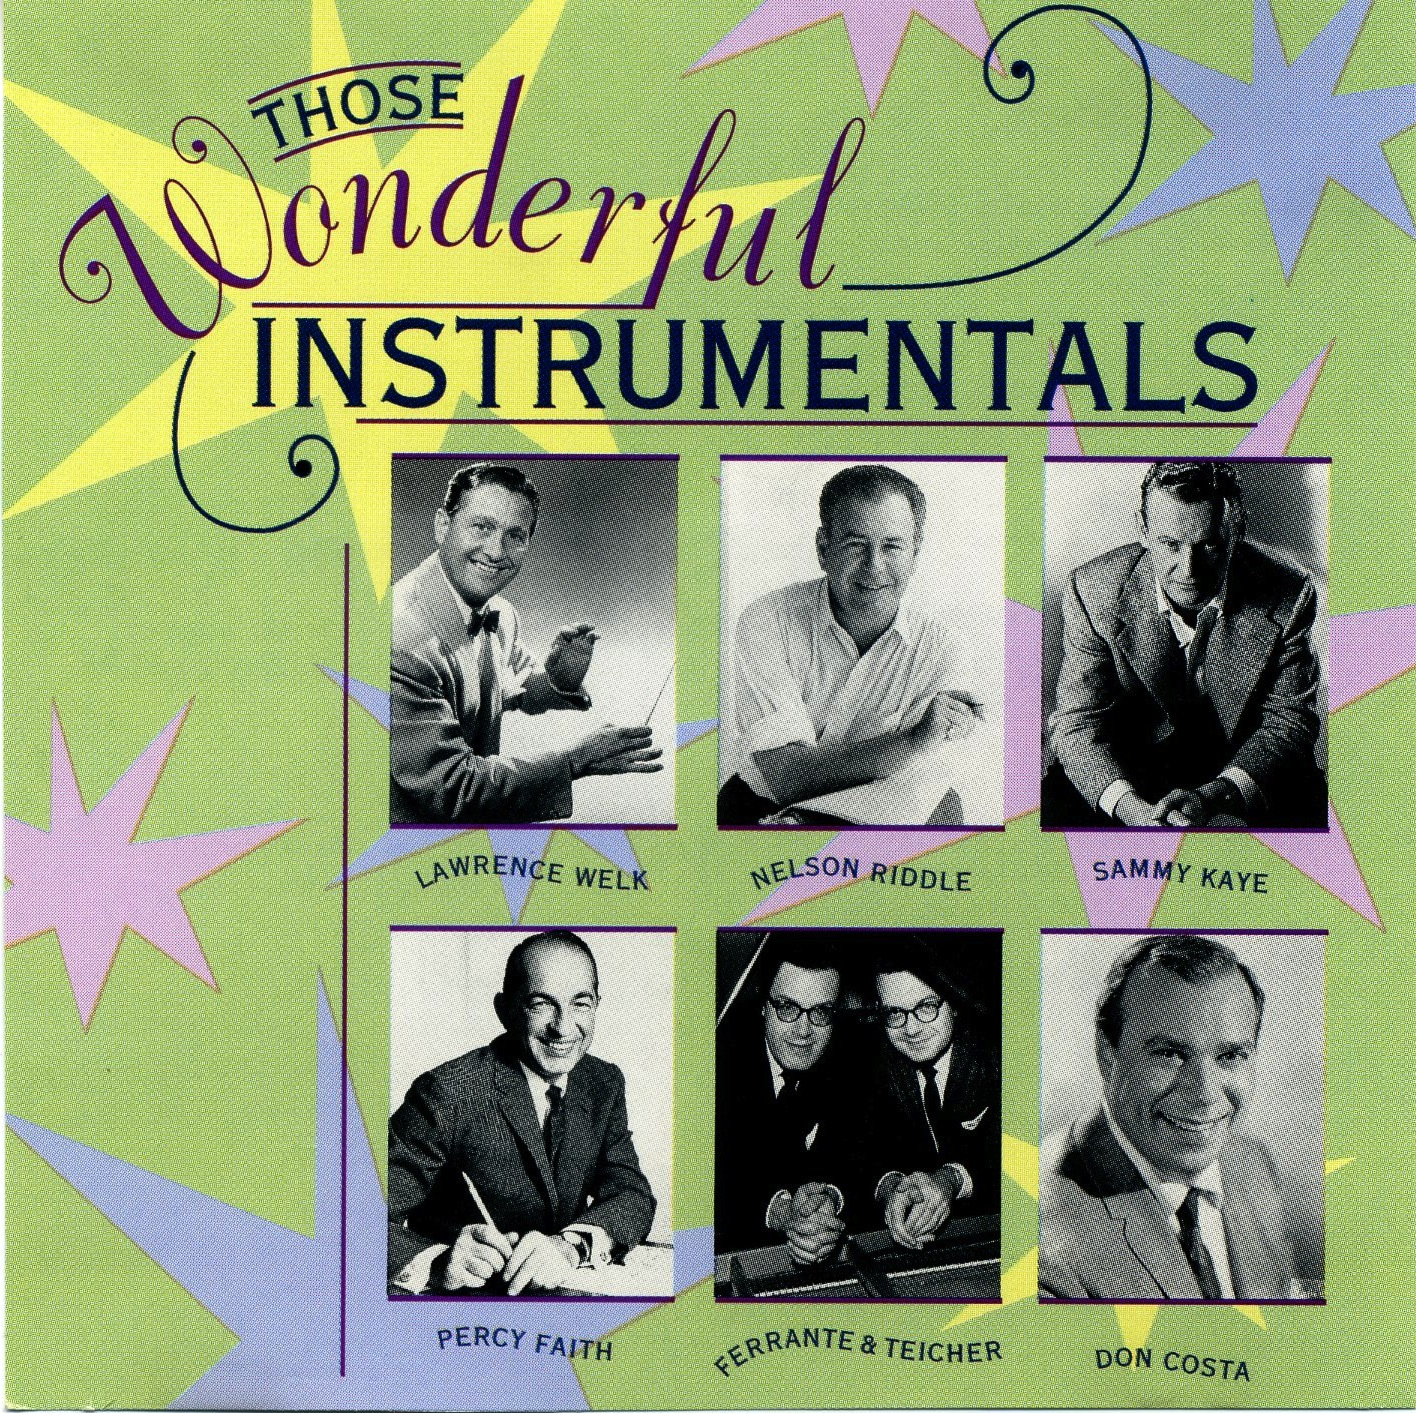 percy latin singles Percy faith and his orchestra - continental music - columbia - usa.